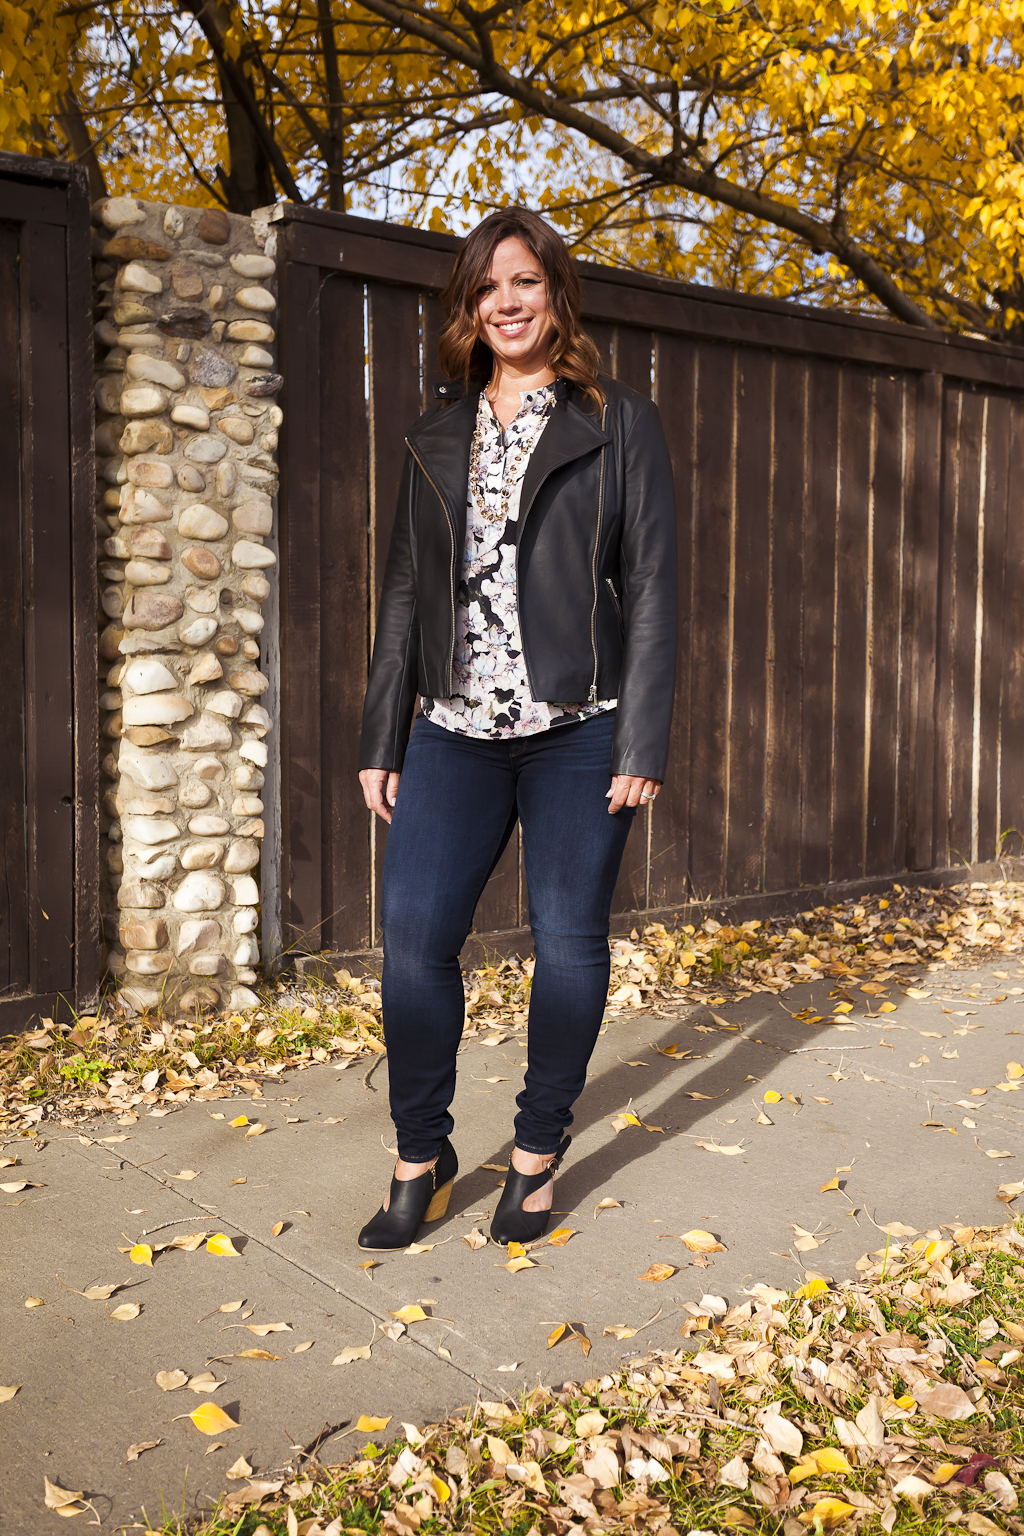 bella maas edmonton boutique sherwood park st. albert rebecca taylor floral blouse fall fashion 2014 01